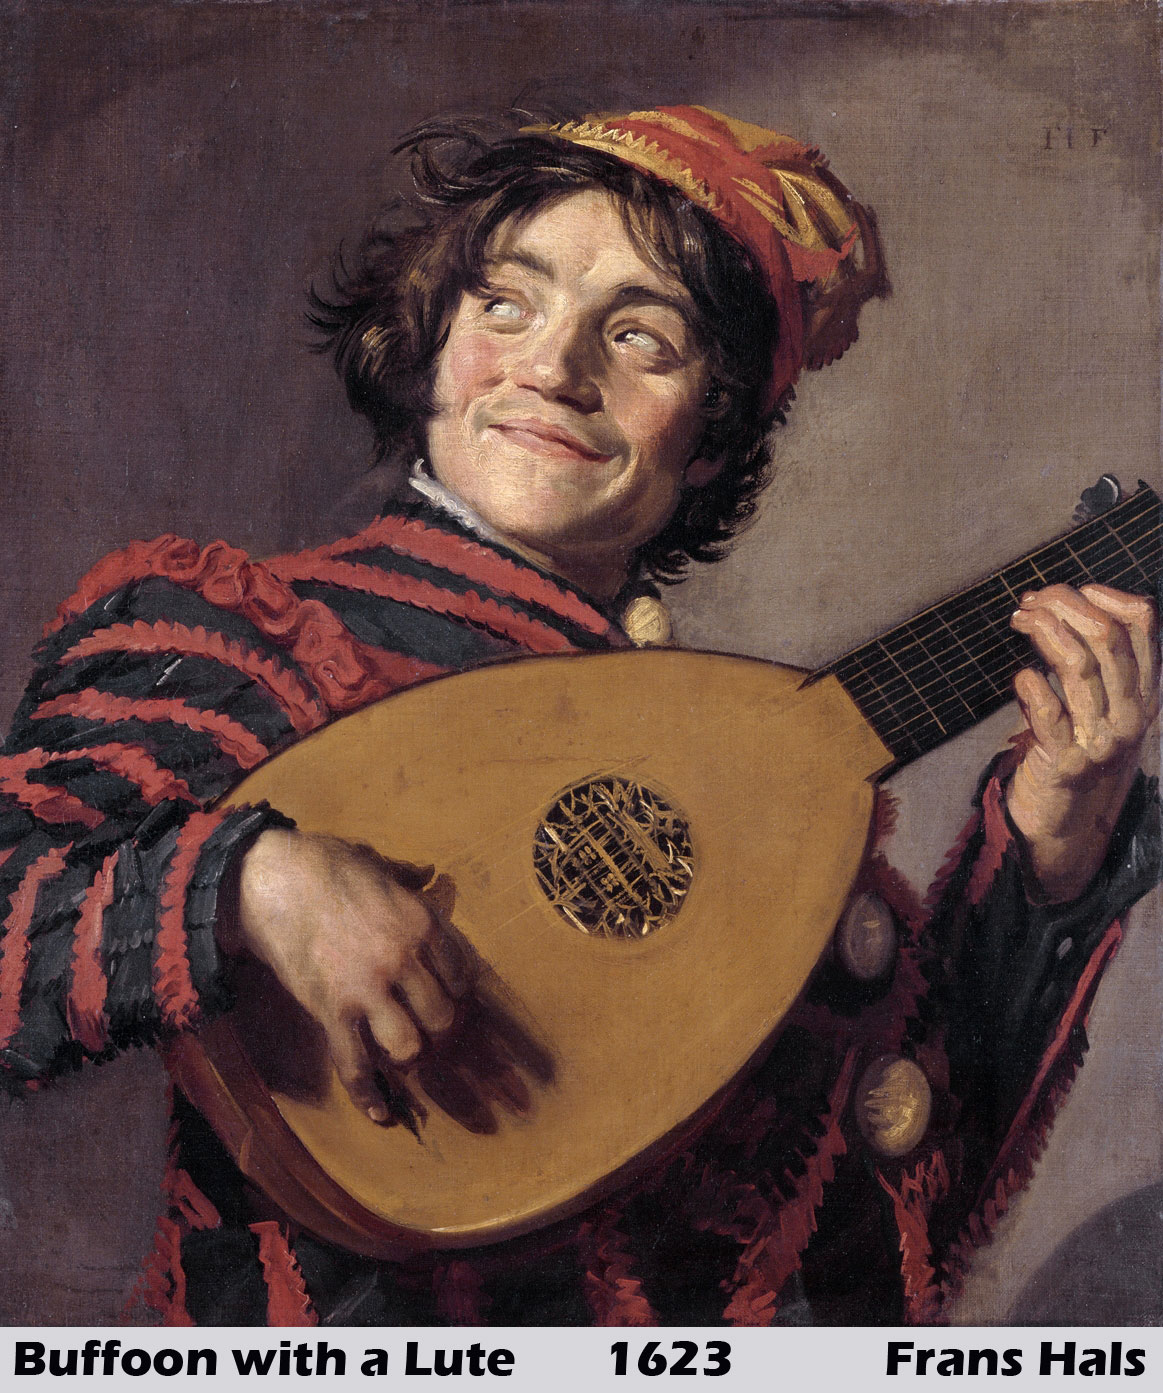 Buffoon with a Lute by Frans Hals